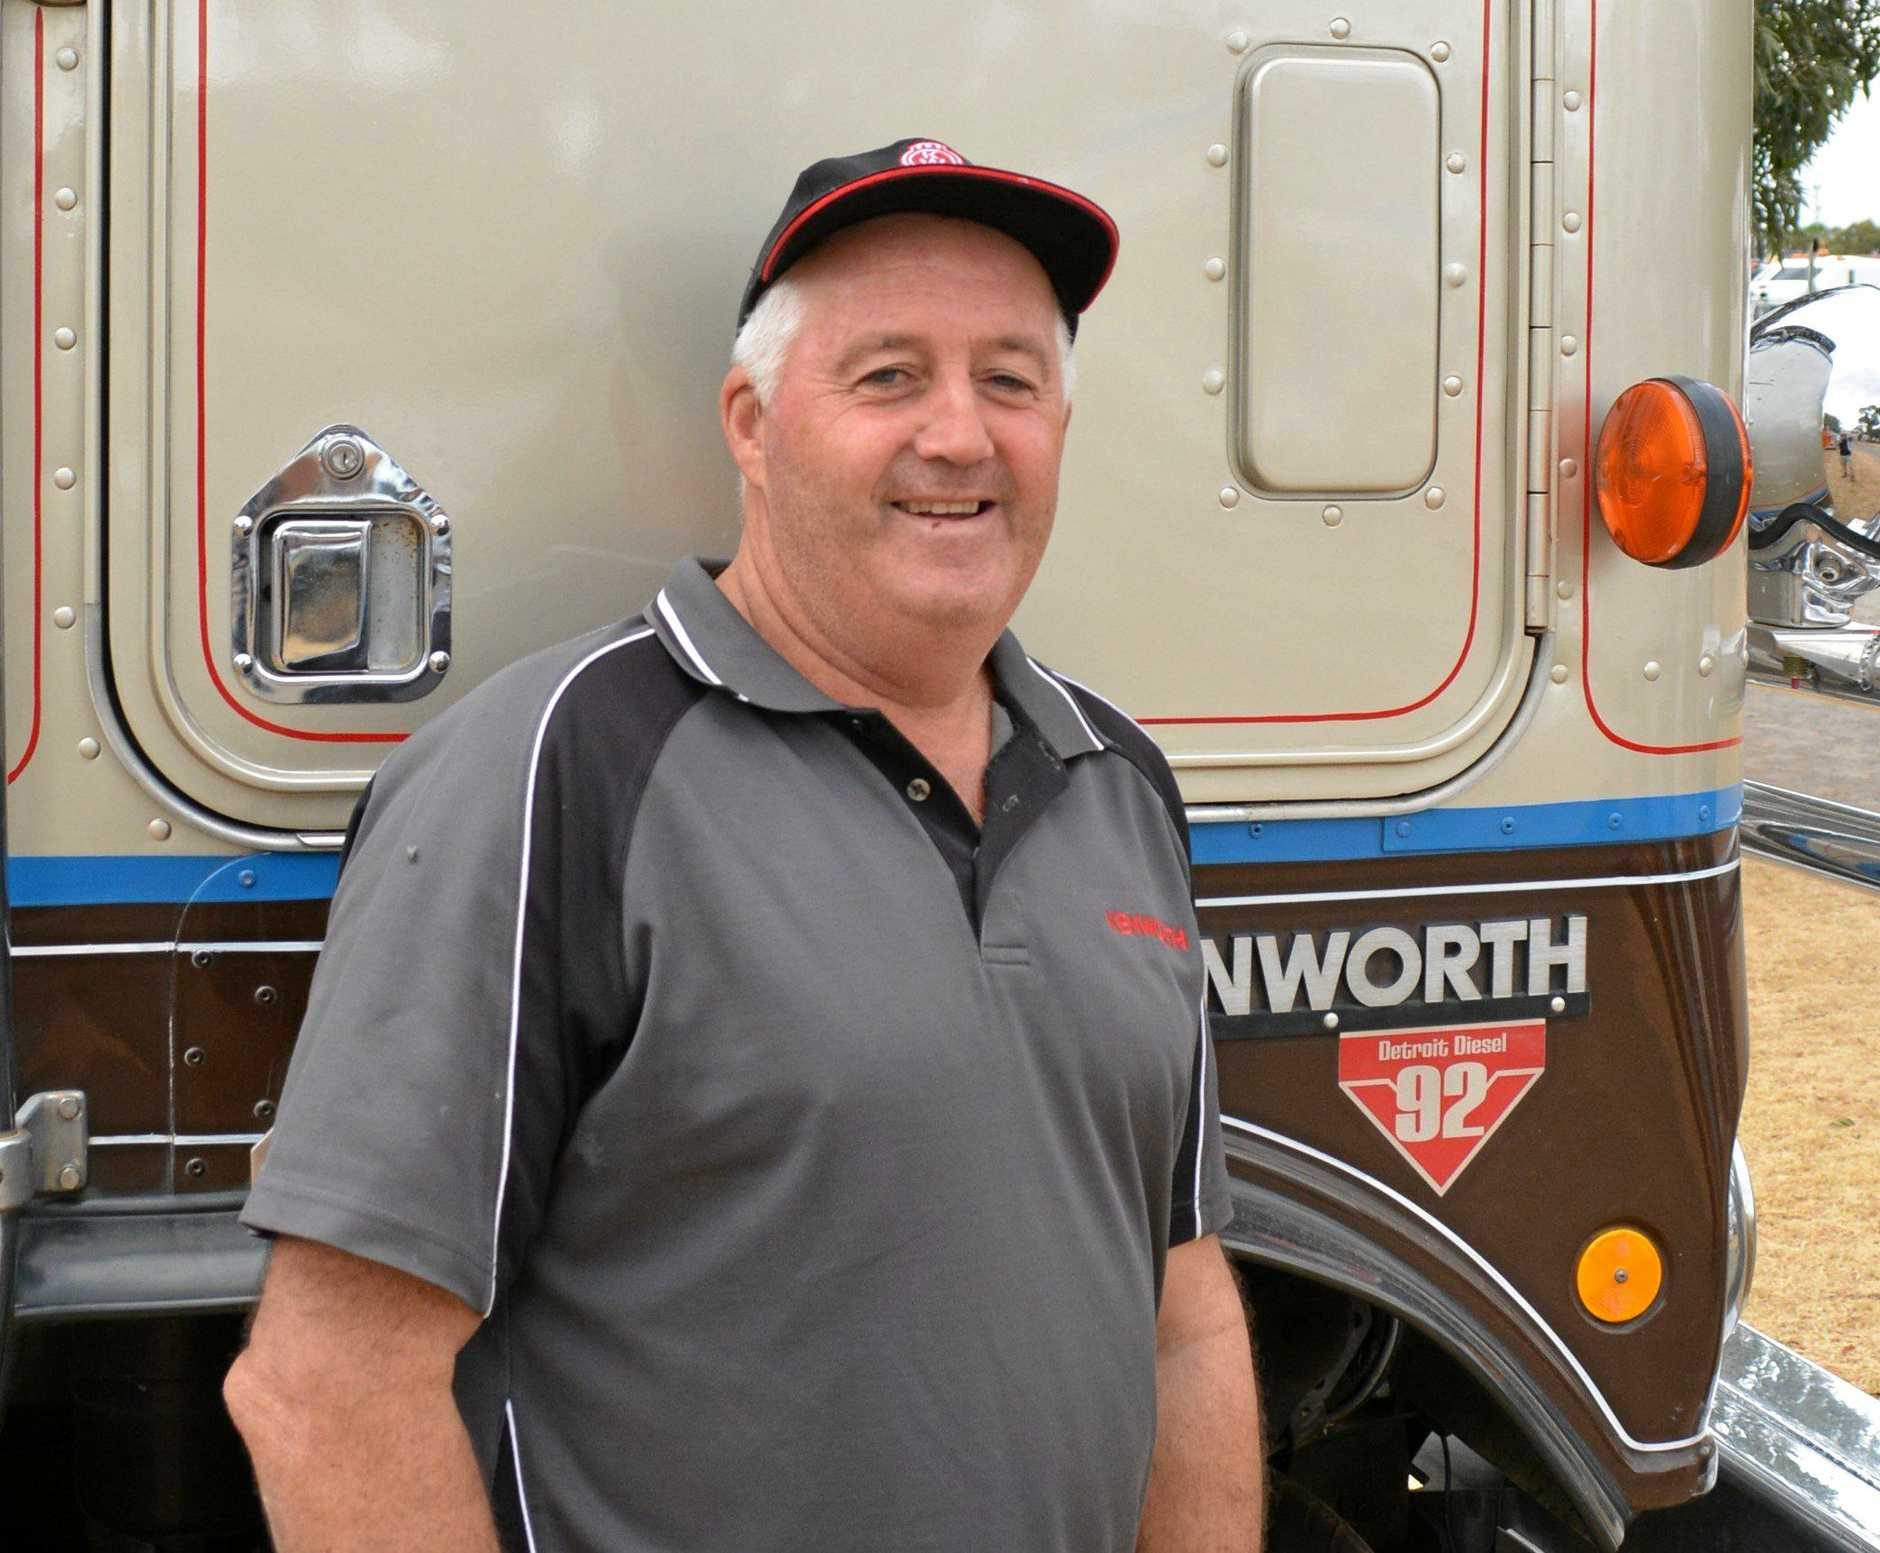 She's a Detroit! Don MacLean and his truck with the distinctive '92 badging.